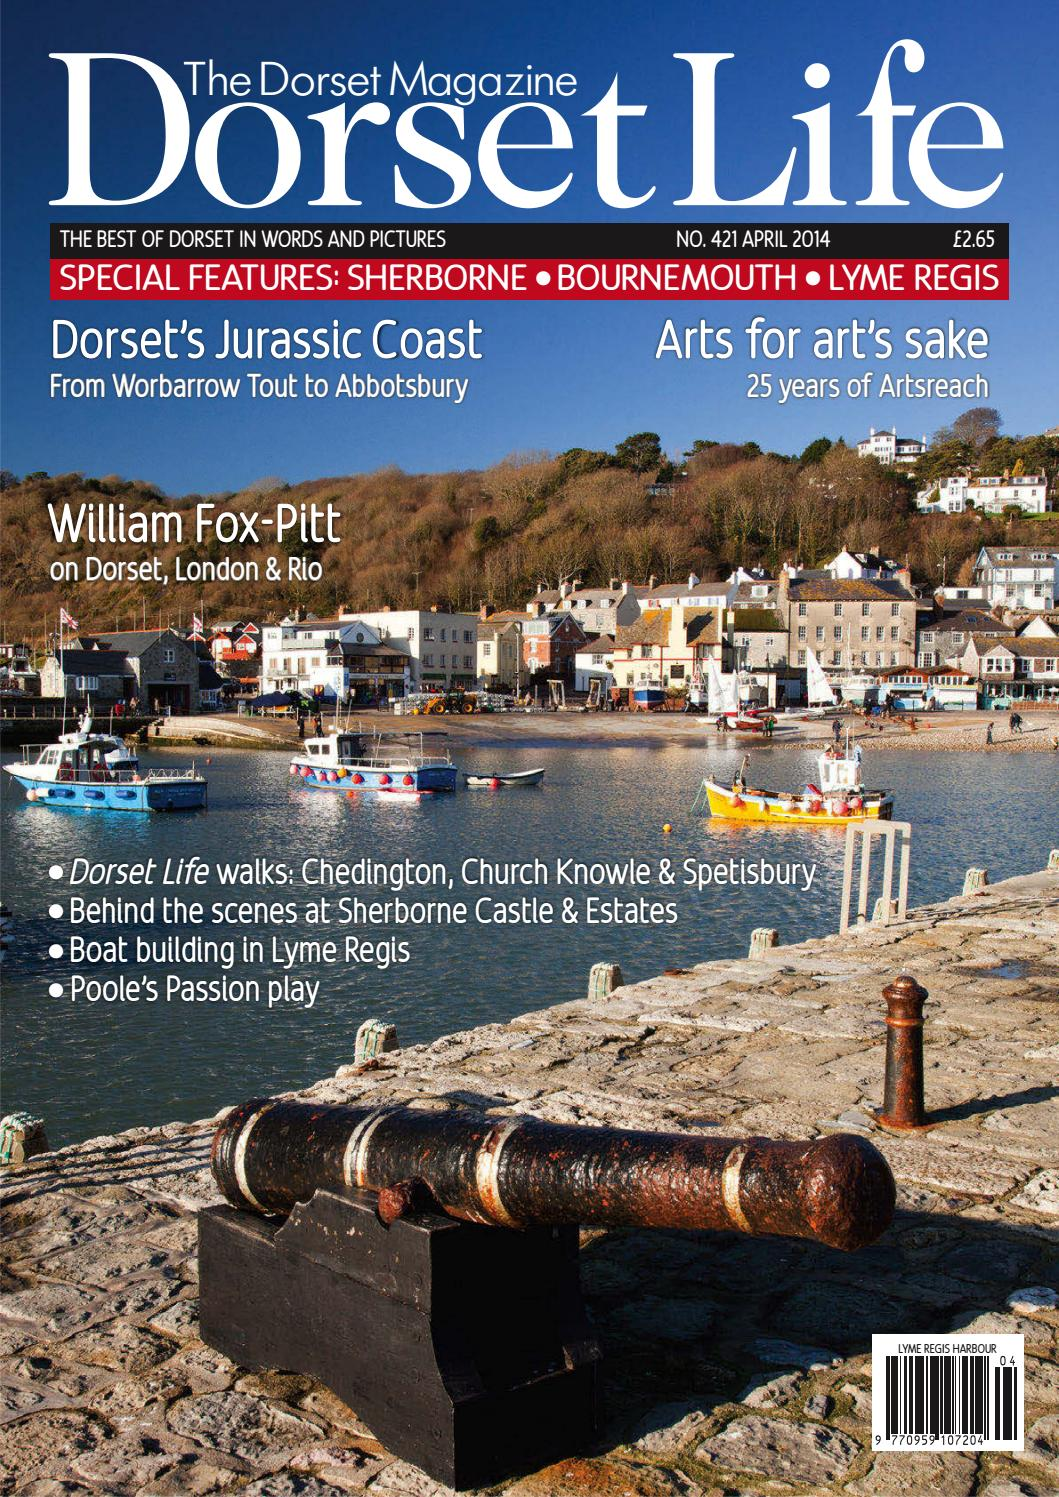 Dorset Life April 2014 Issue 421 By Dorset Life The Dorset - Garden Furniture Clearance Poole Dorset